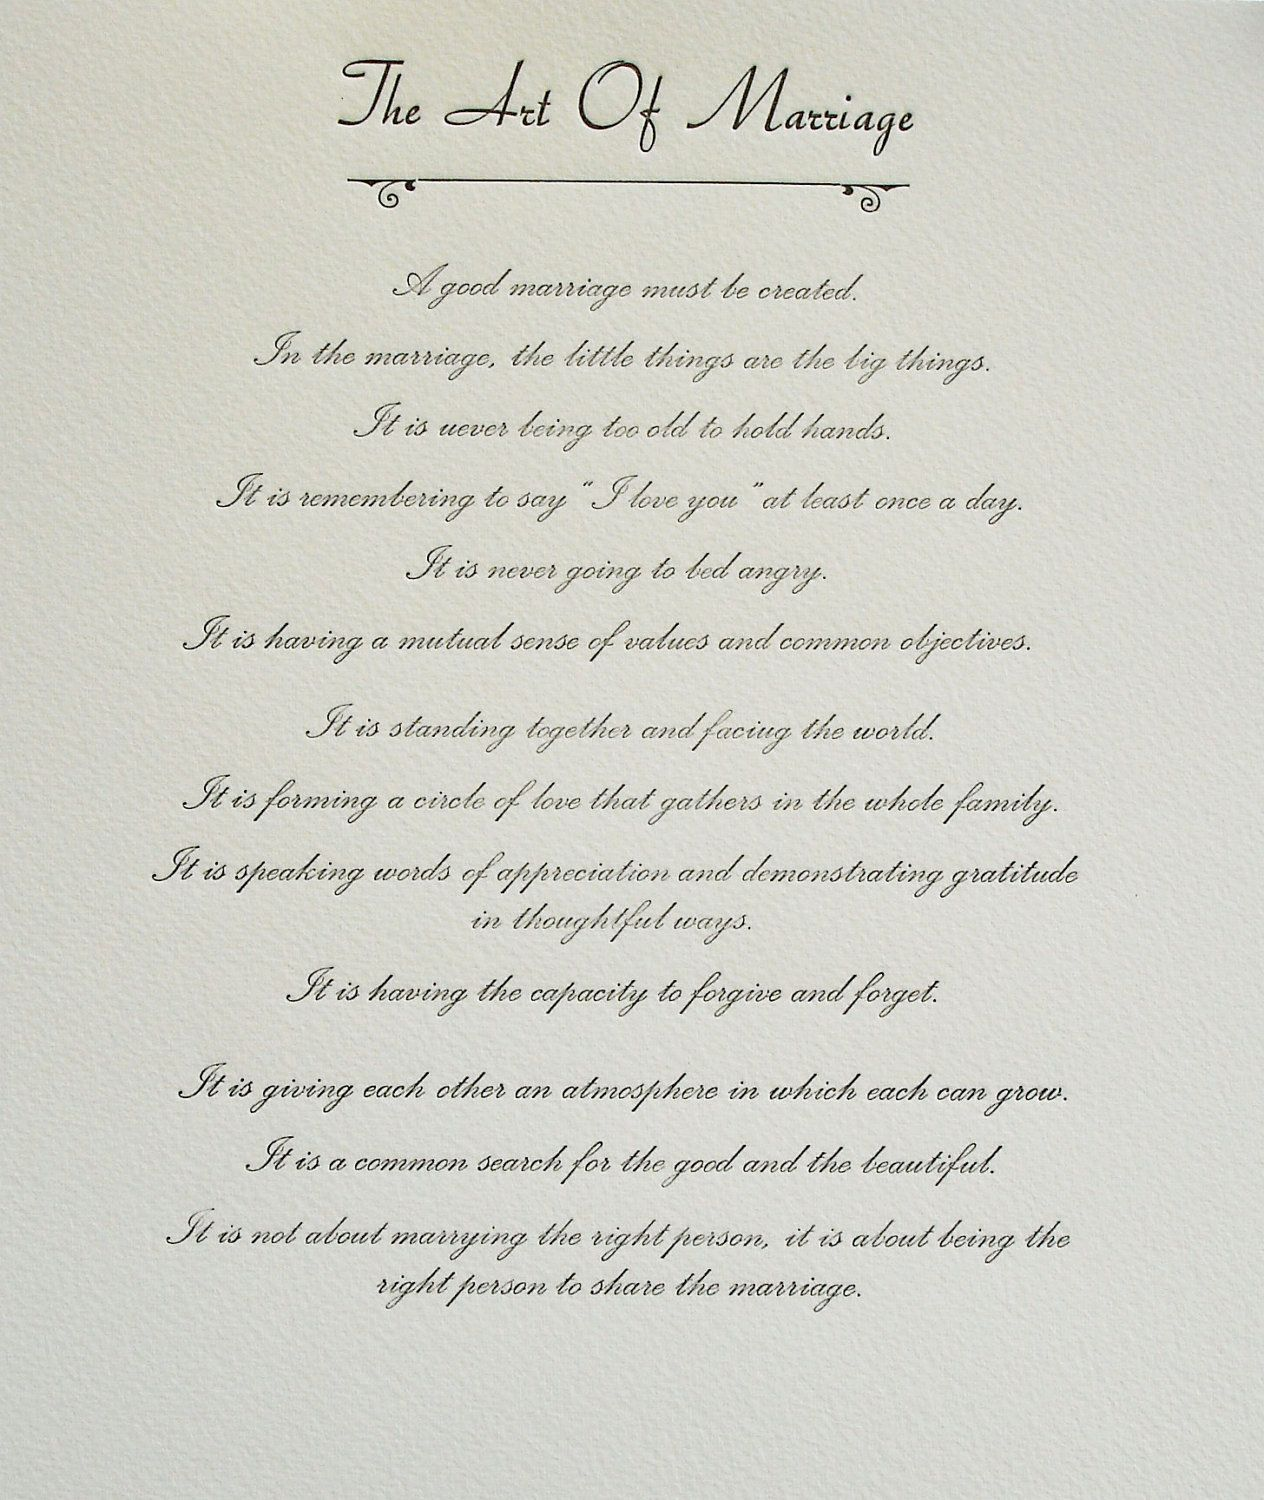 Non Religious Wedding Ceremony Script: The Art Of Marriage - Our Wedding Words :)